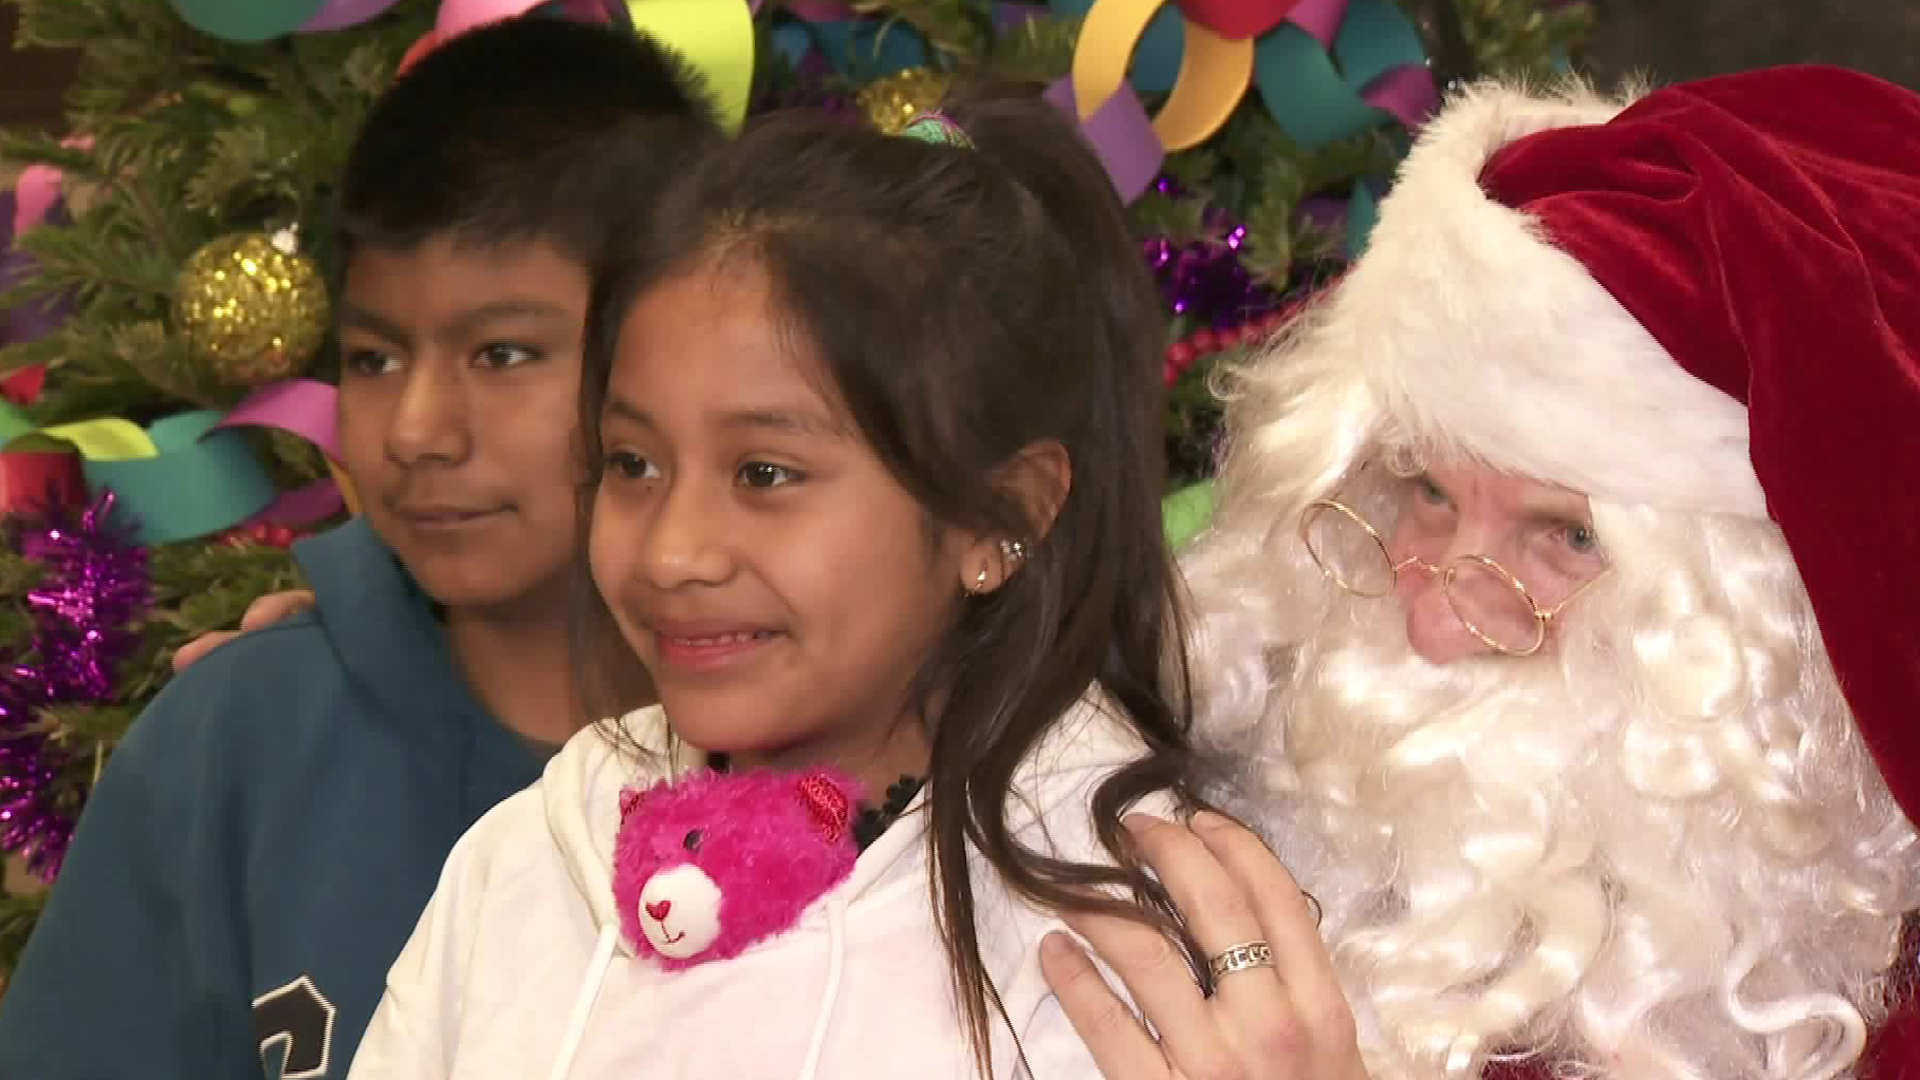 Children sit on Santa's lap during the Temple of Israel's Christmas event in Hollywood on Dec. 25, 2019. (Credit: KTLA)